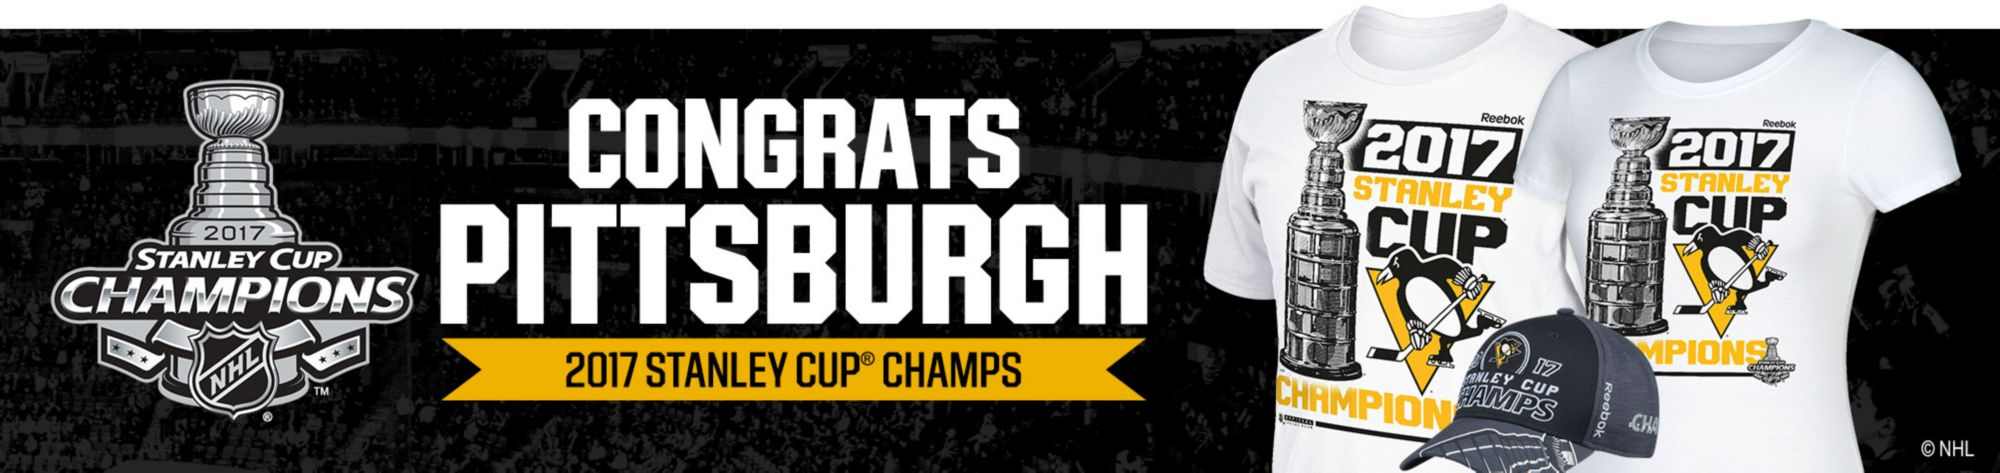 Congrats Pittsburgh Penguins!